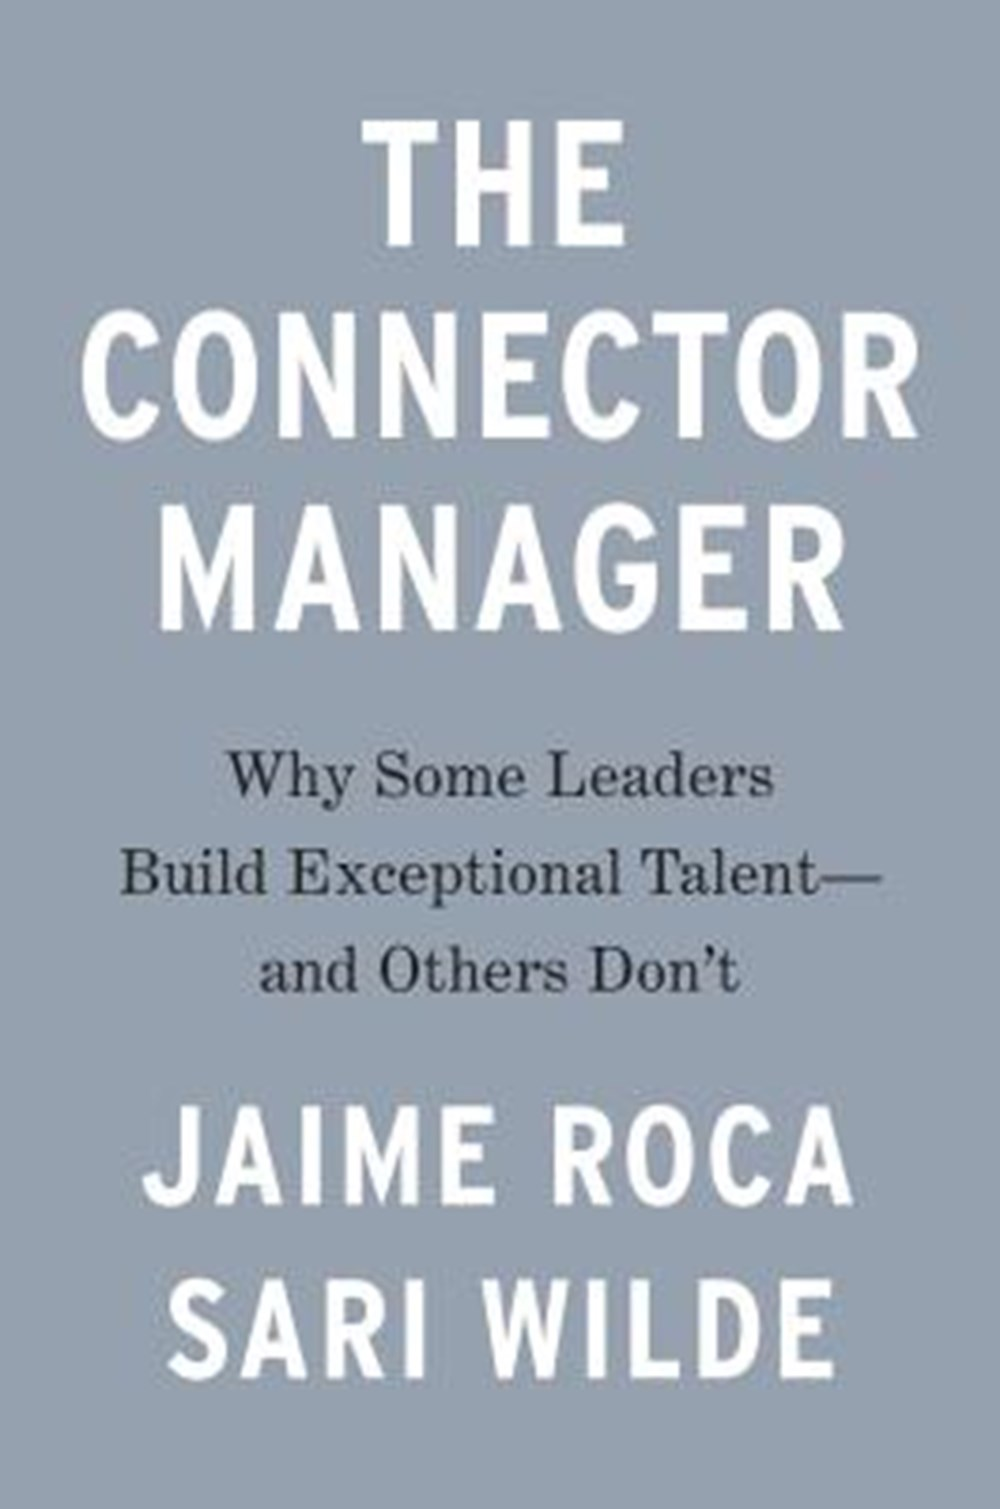 Connector Manager Why Some Leaders Build Exceptional Talent - And Others Don't